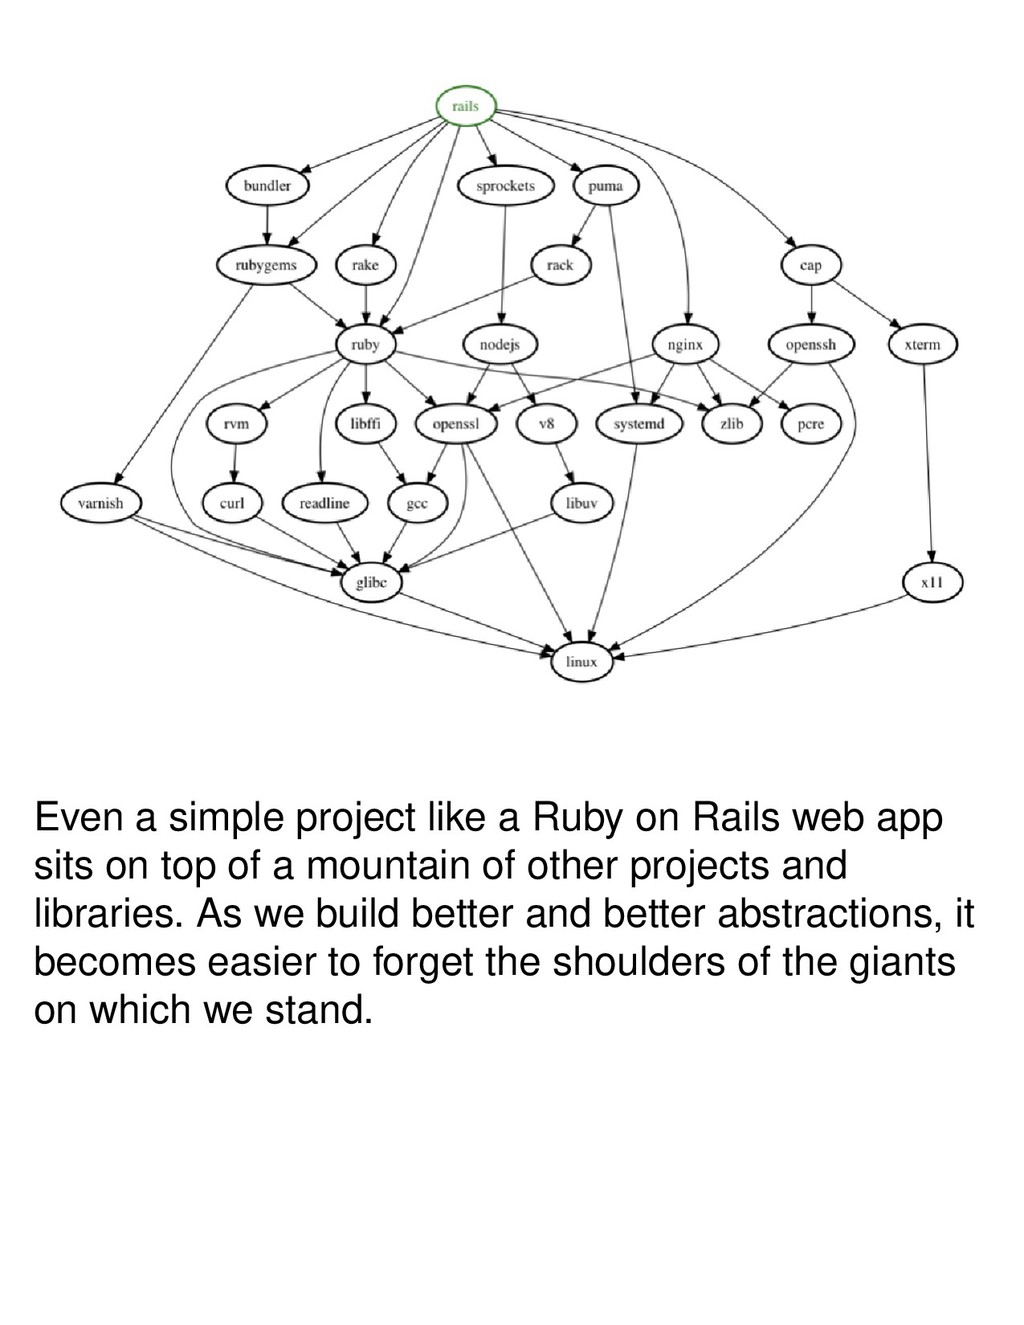 Even a simple project like a Ruby on Rails web ...